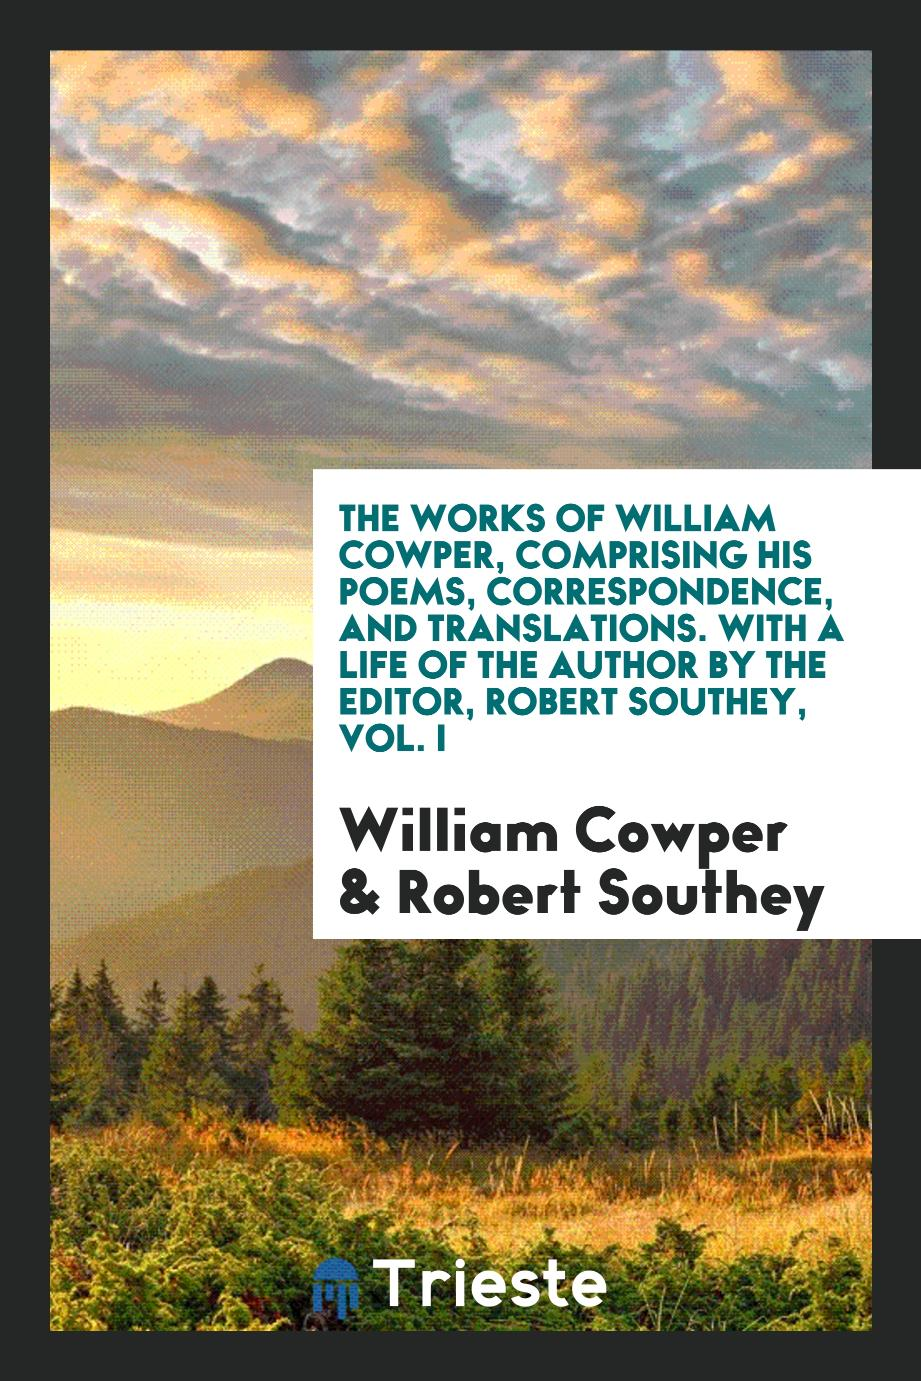 The Works of William Cowper, Comprising His Poems, Correspondence, and Translations. With a Life of the Author by the Editor, Robert Southey, Vol. I